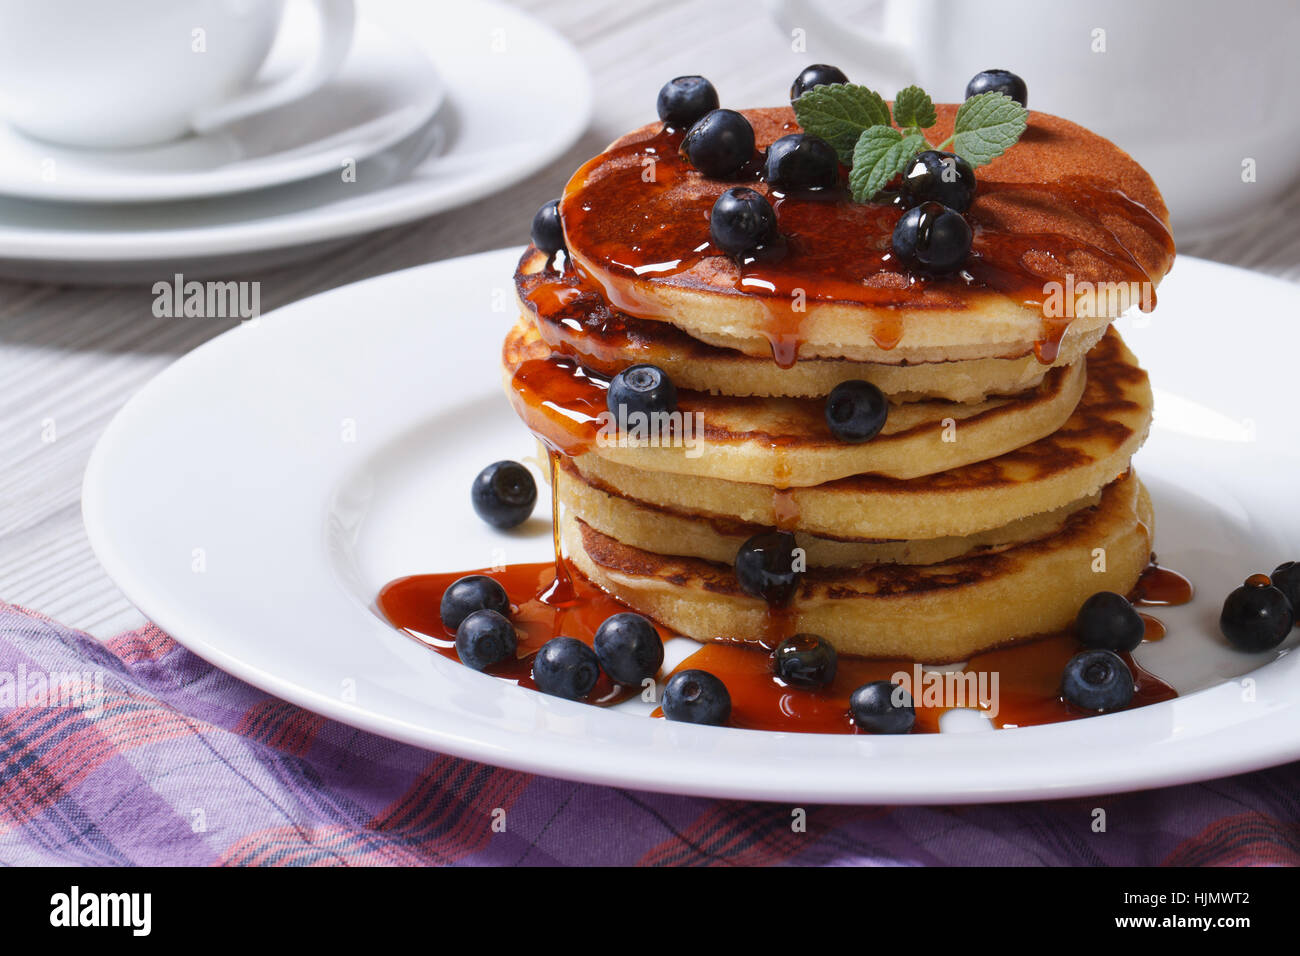 American Pancake with blueberries and maple syrup on a white plate horizontal - Stock Image